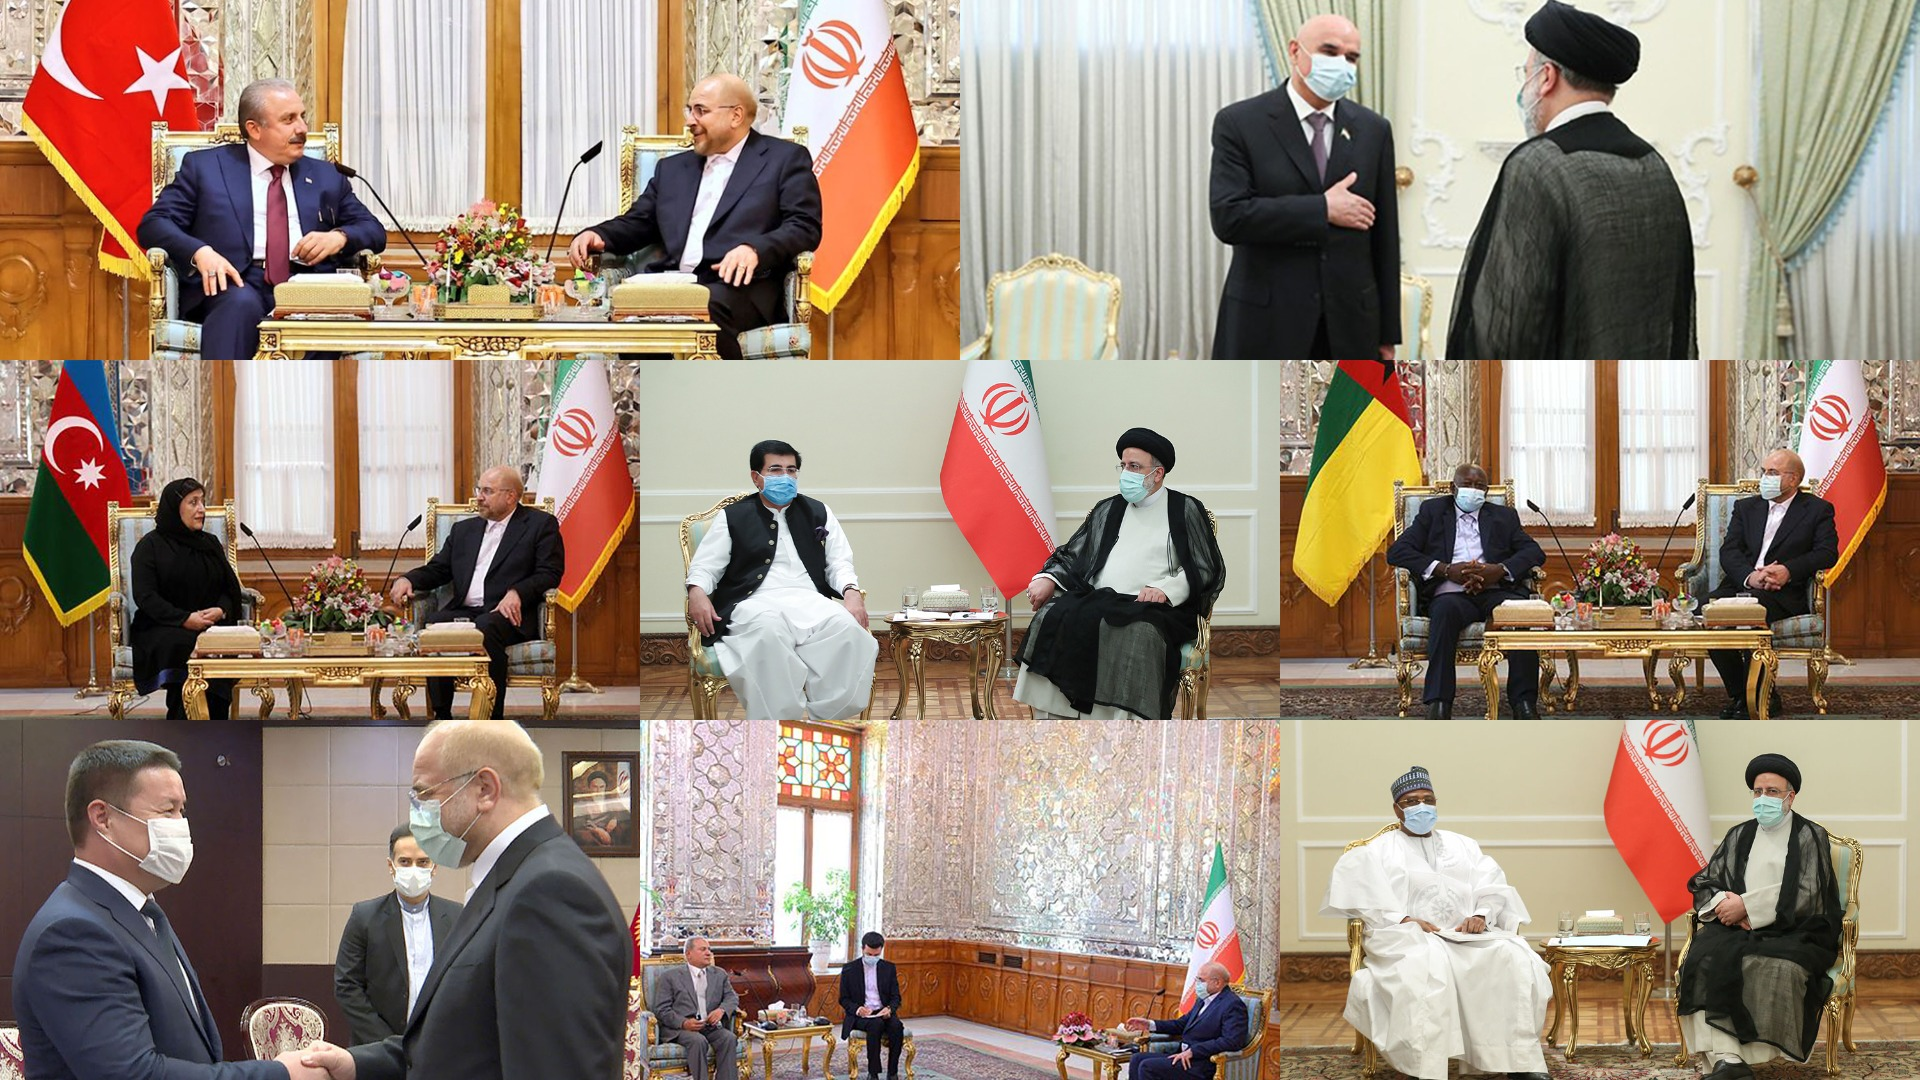 PUIC Member Parliaments attend the Inauguration of the New Iranian President Ceremony